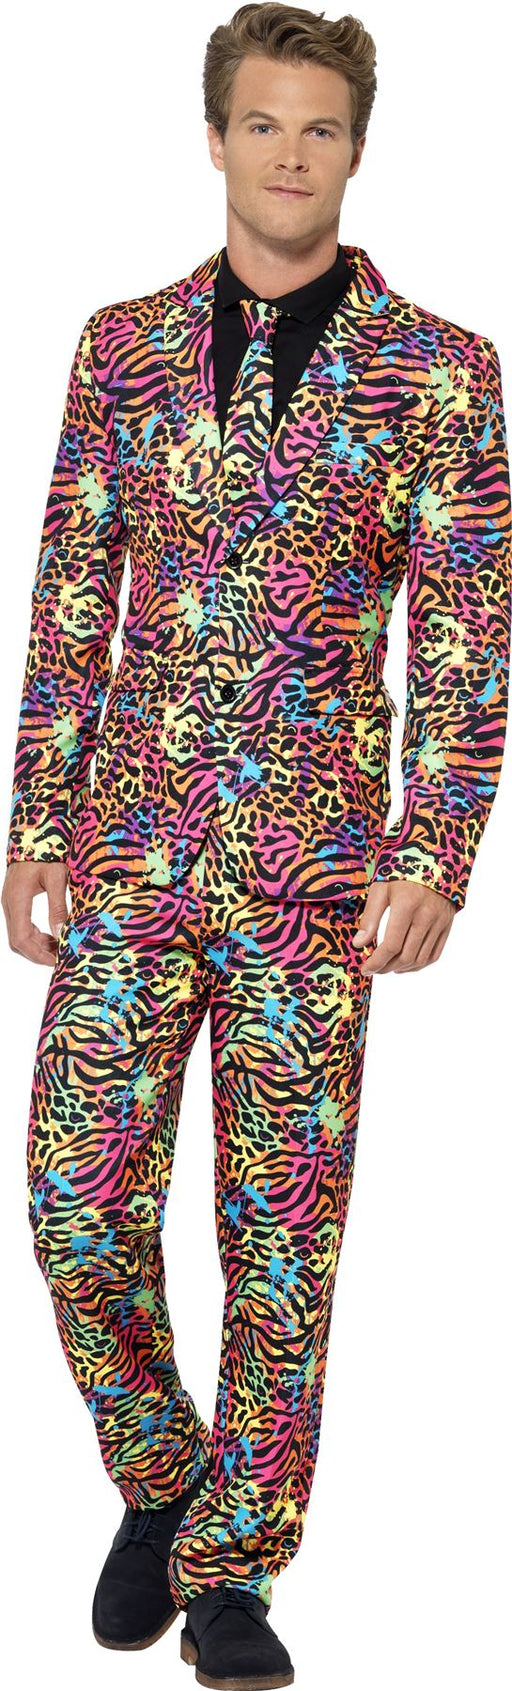 Stand Out Suit (Neon Animal)